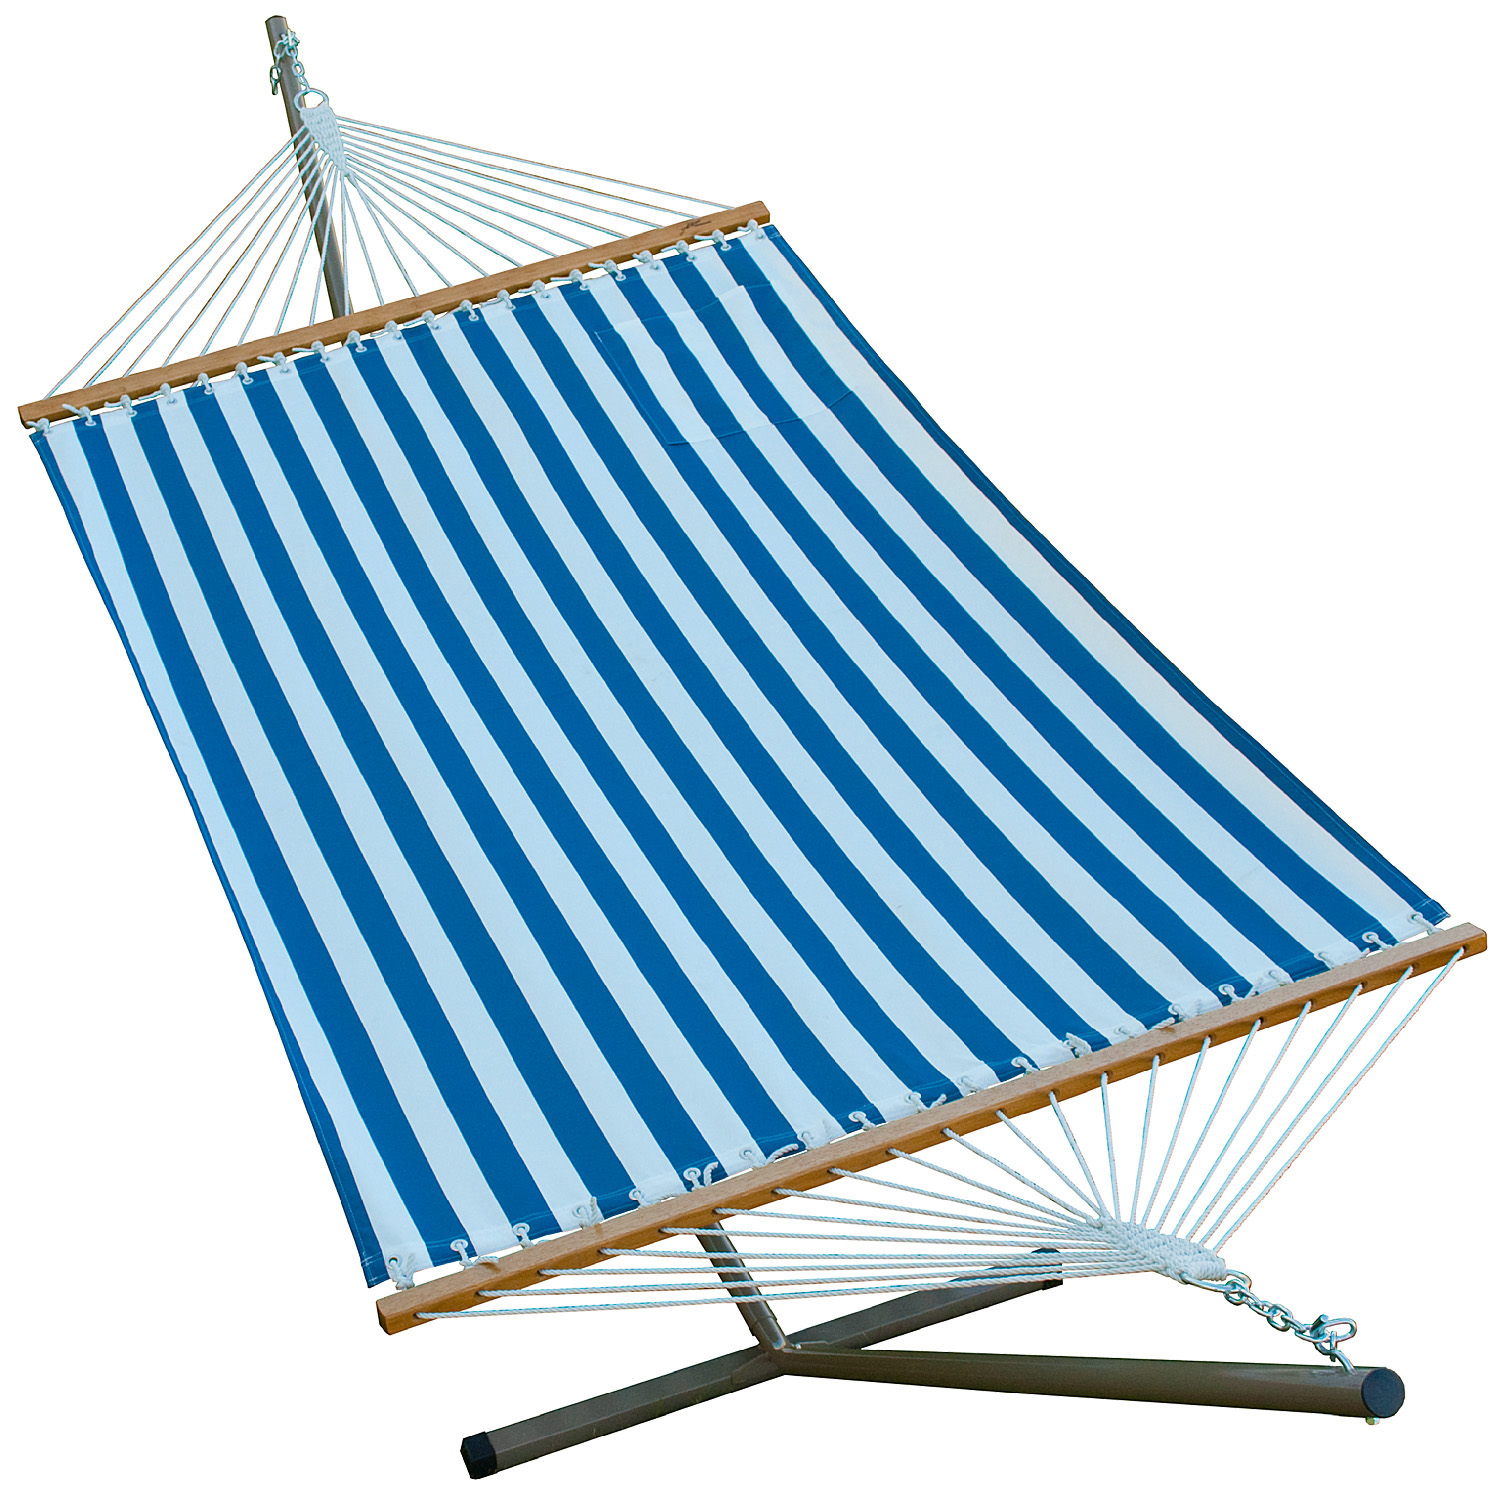 12' Fabric Hammock and Stand Combination